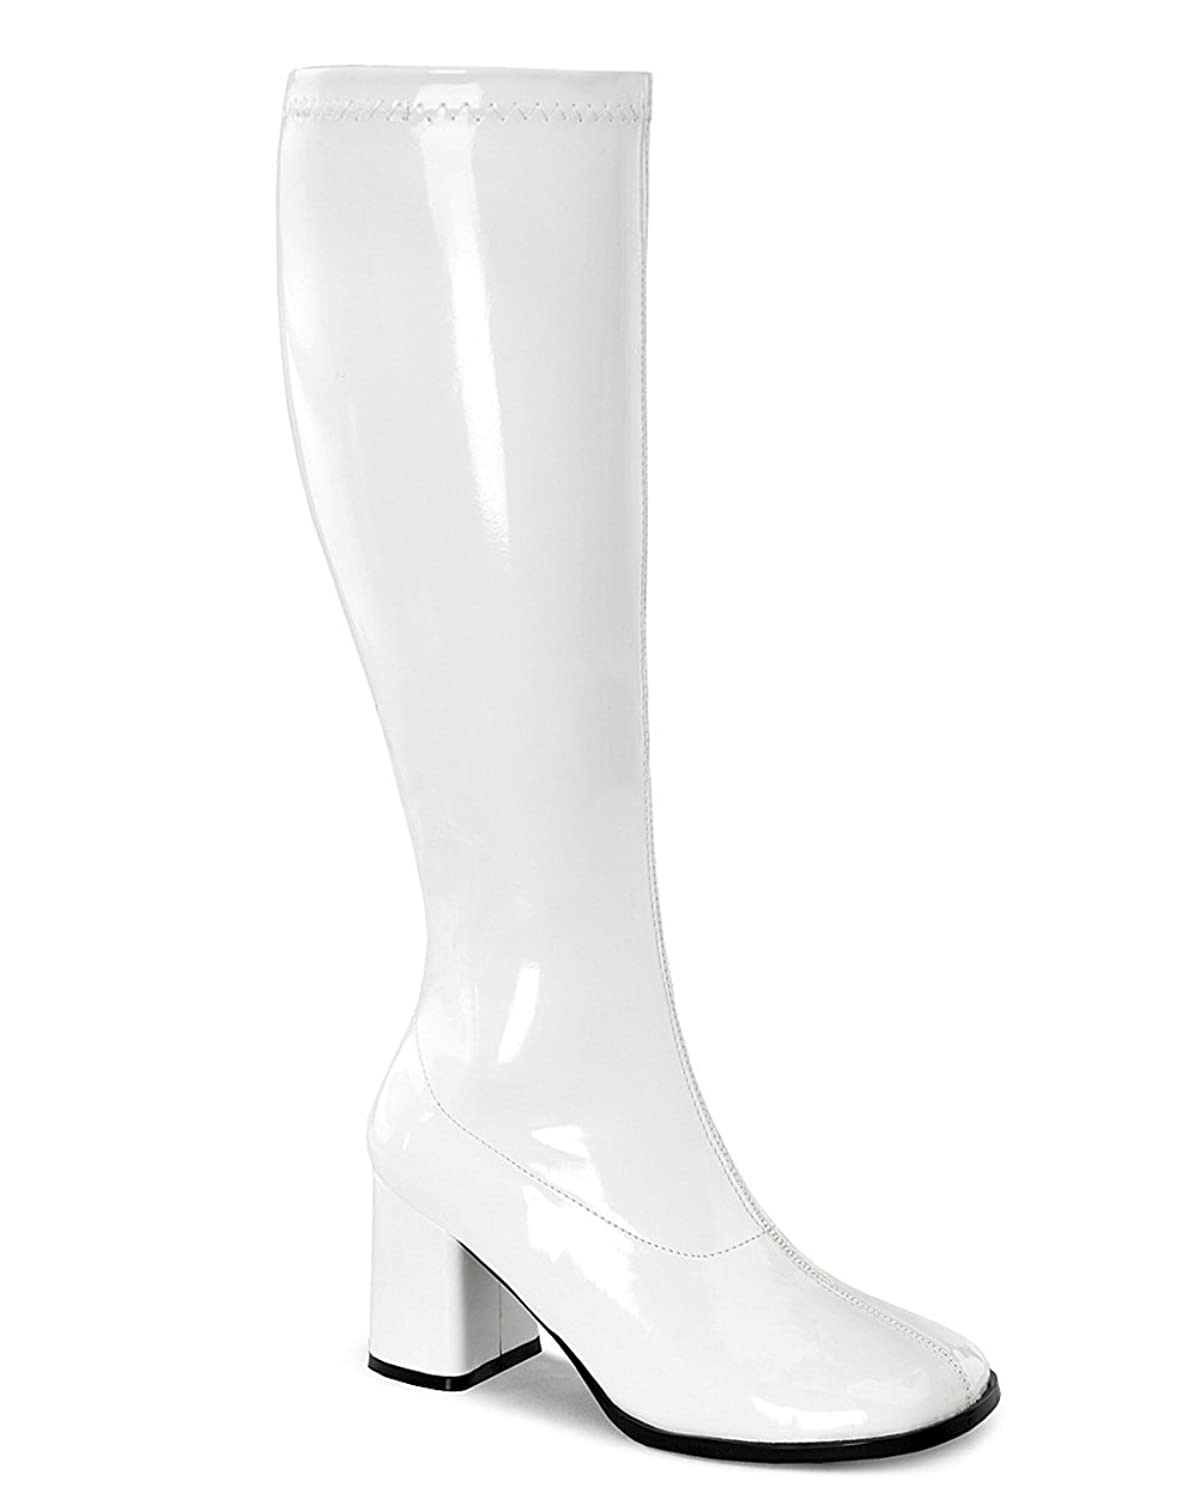 Womens Knee High Boots White GOGO 3 Inch WIDE CALF Sexy Block Heel Knee Boot Pat B002A1BT1Q 7 B(M) US